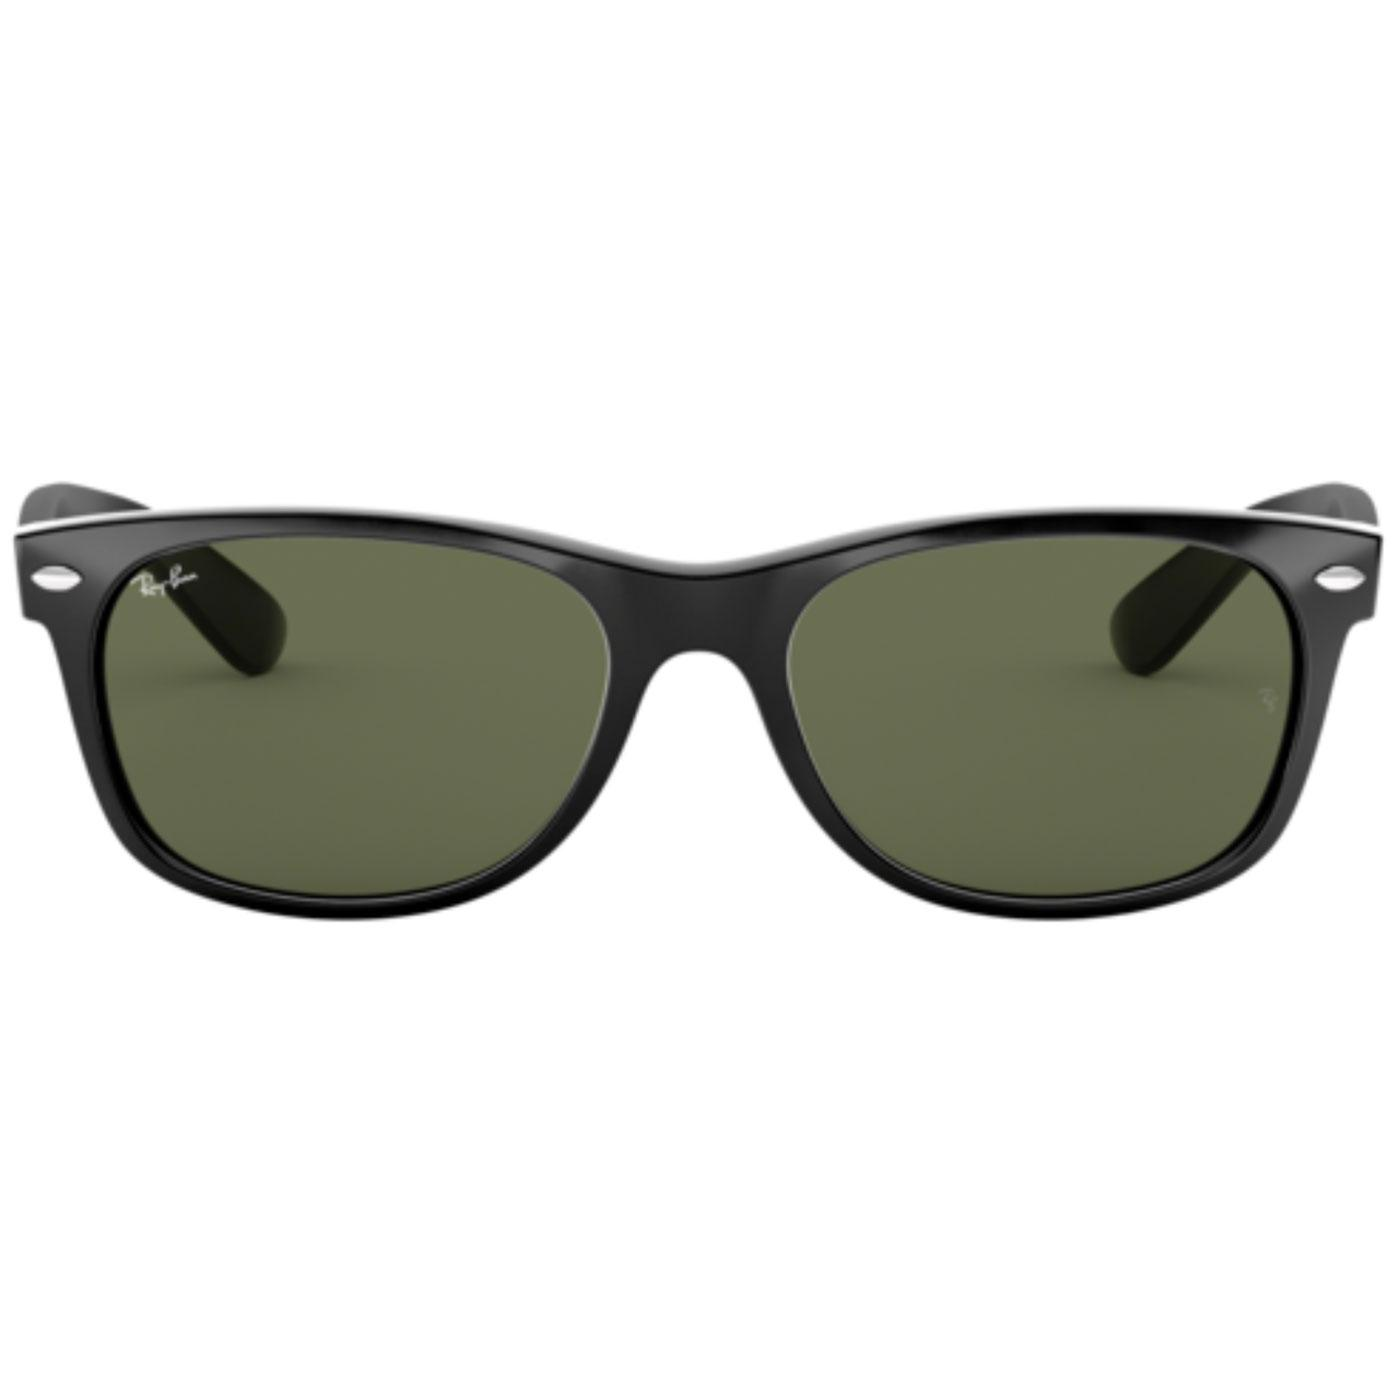 New Wayfarer RAY-BAN Retro Mod Sunglasses Black